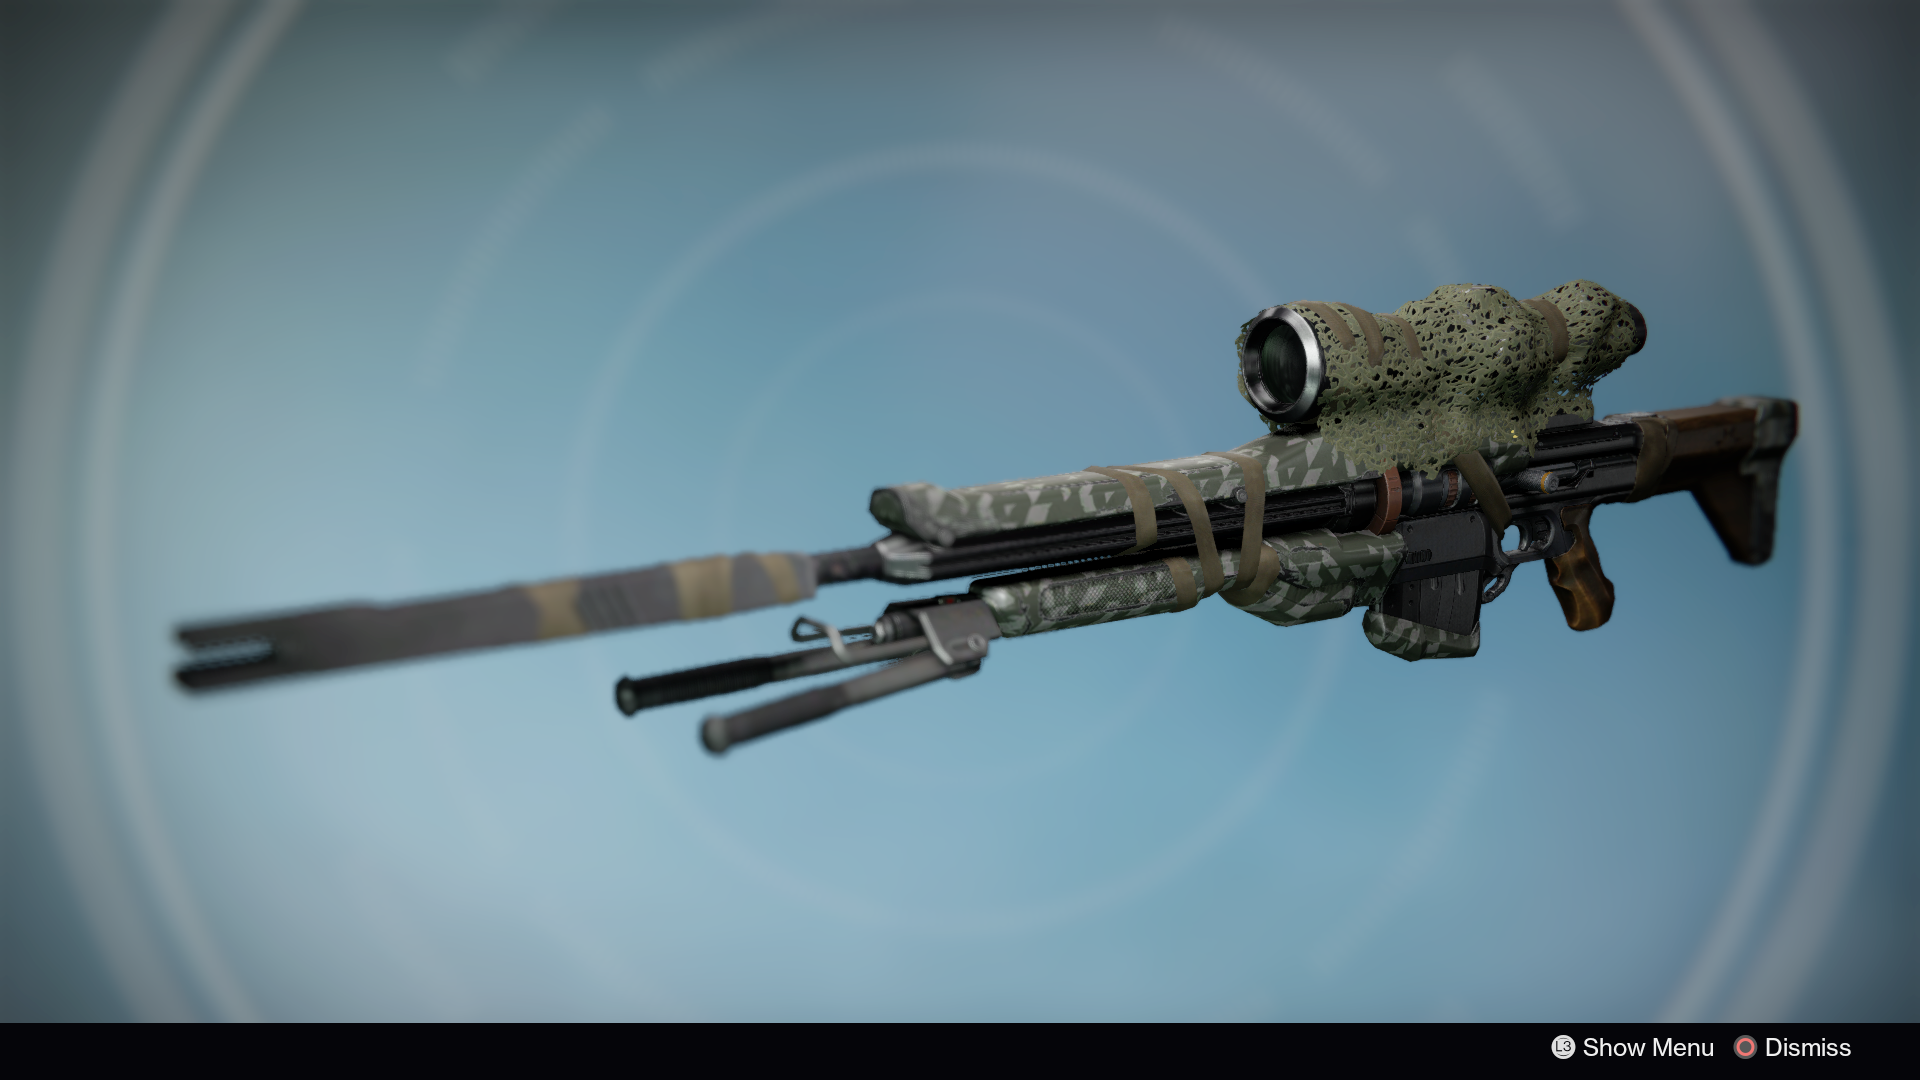 Patience and Time (Year 2) | Destiny Wiki | FANDOM powered ...